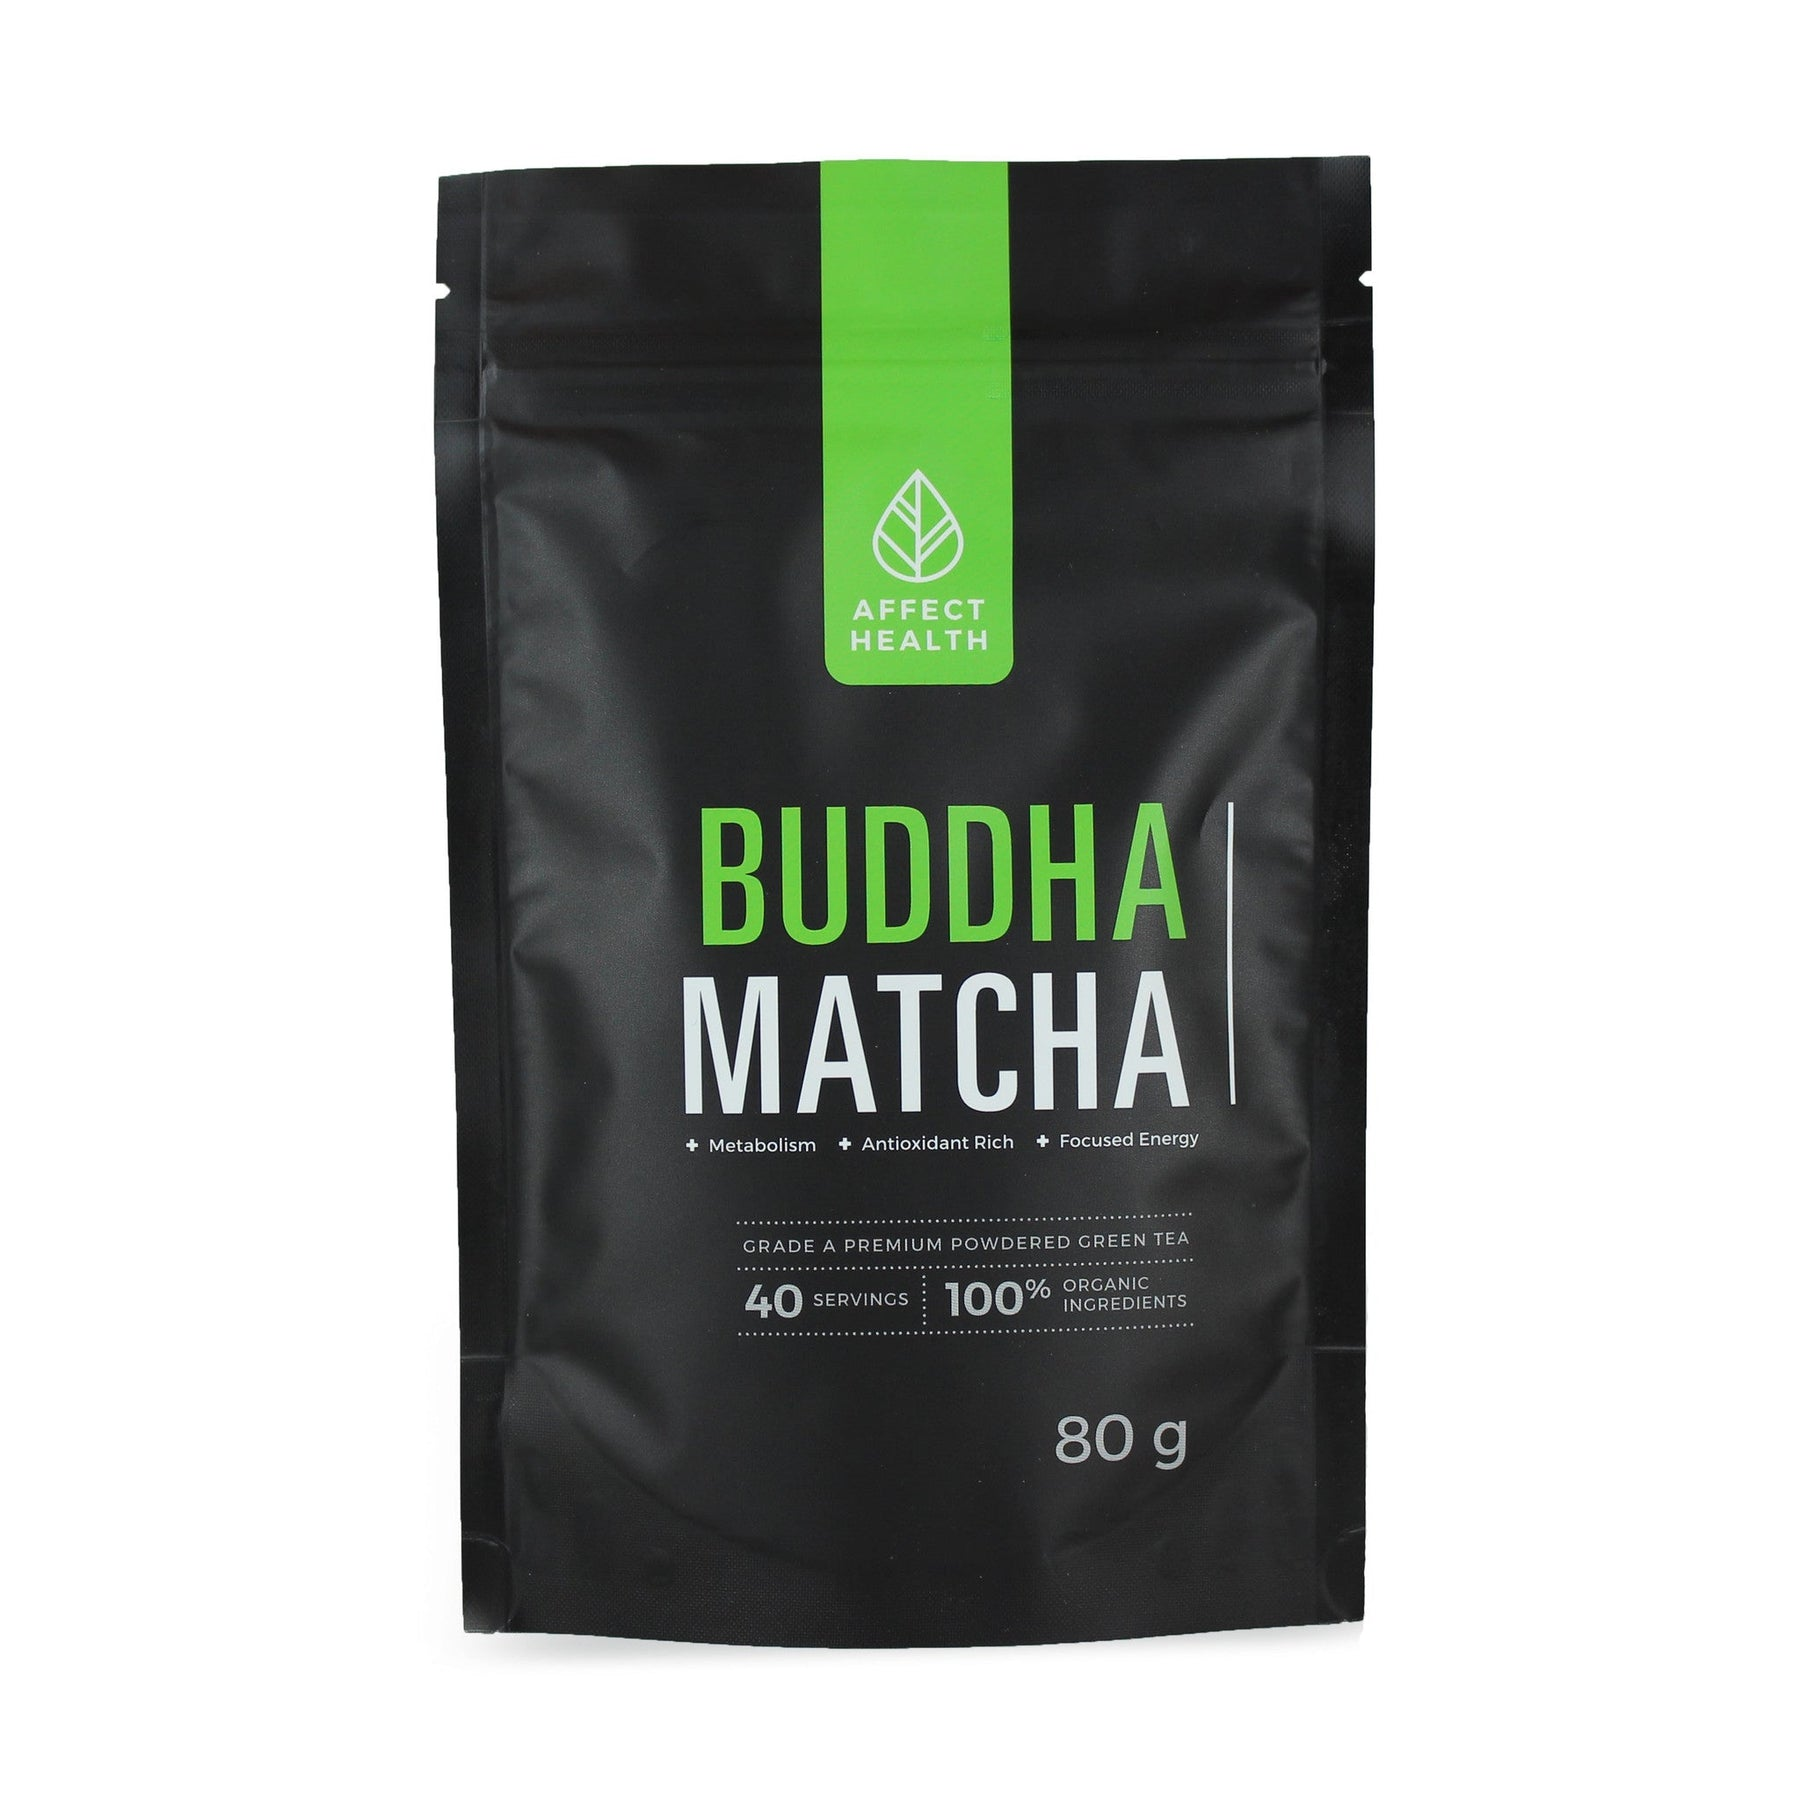 Affect Health Buddha Matcha